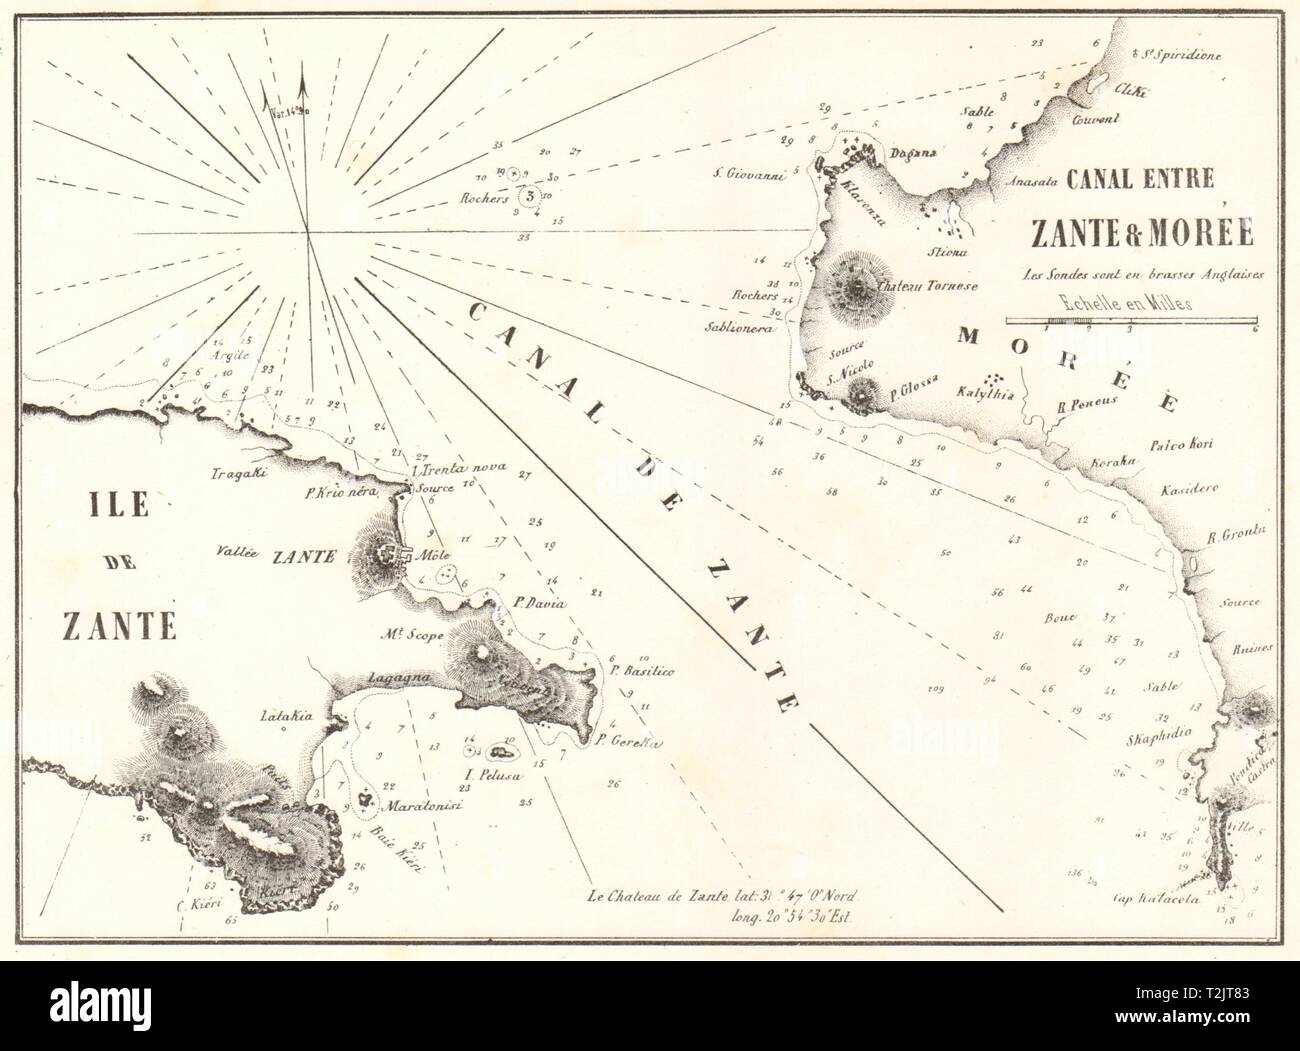 Zakynthos channel. 'Canal entre Zante & Moree'. Greece. GAUTTIER 1854 old map - Stock Image